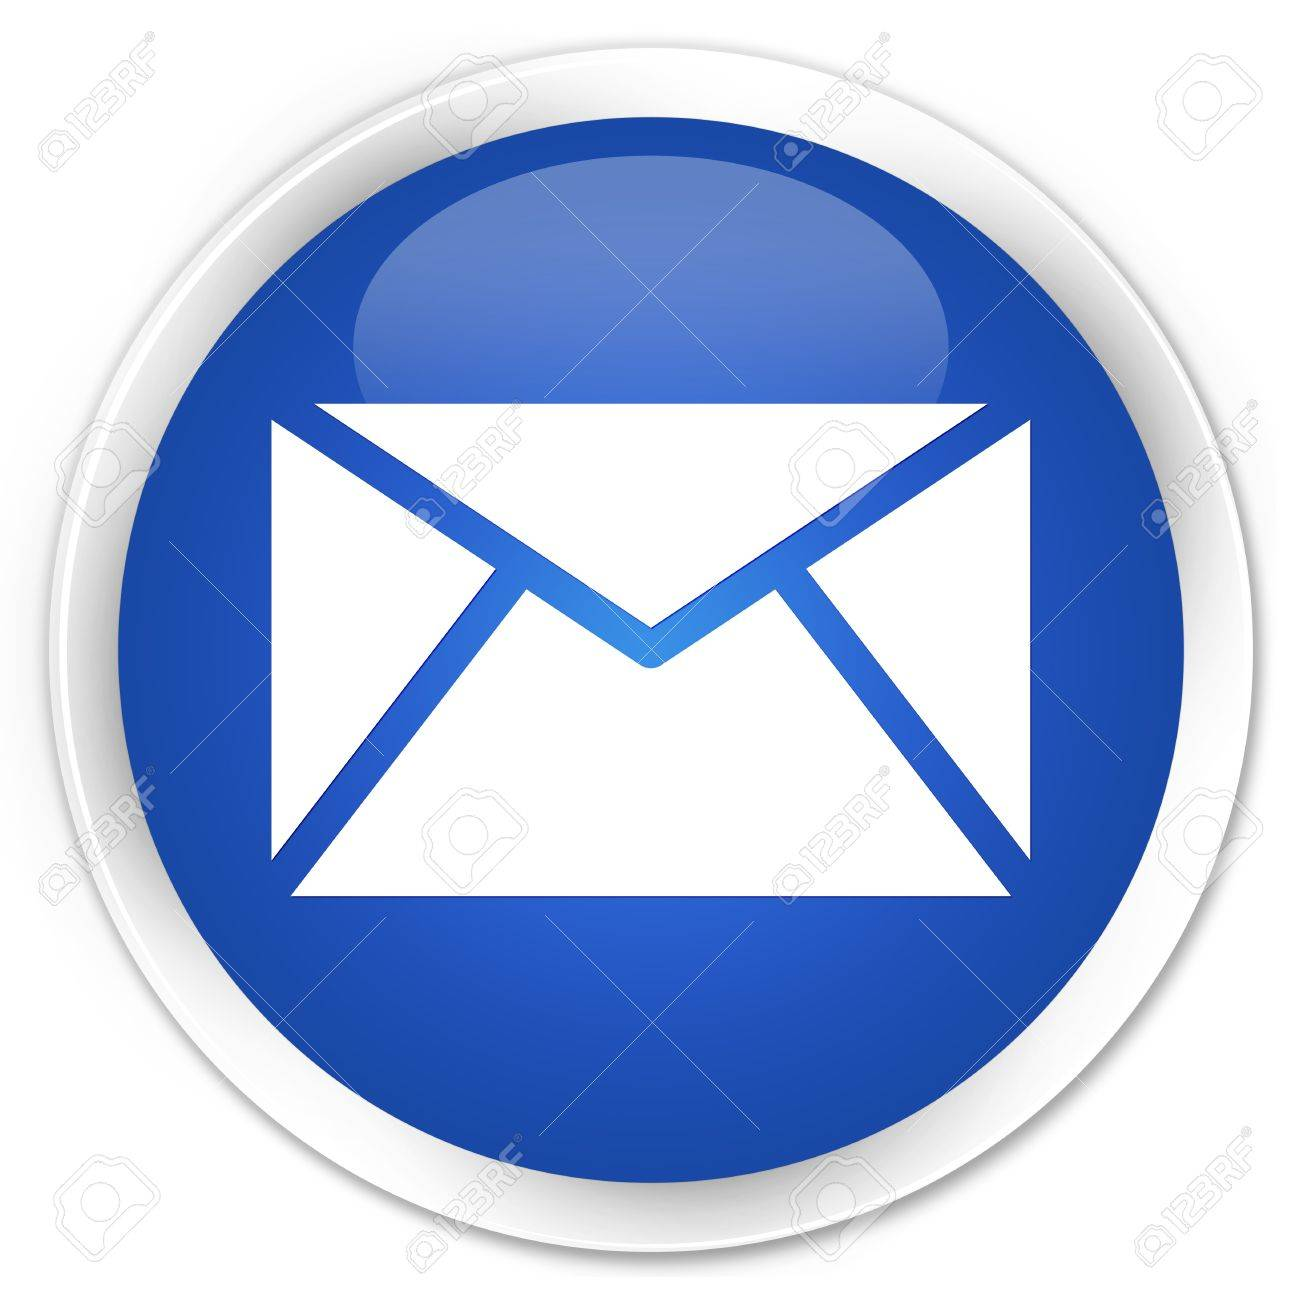 Email icon glossy blue button Stock Photo - 15843361